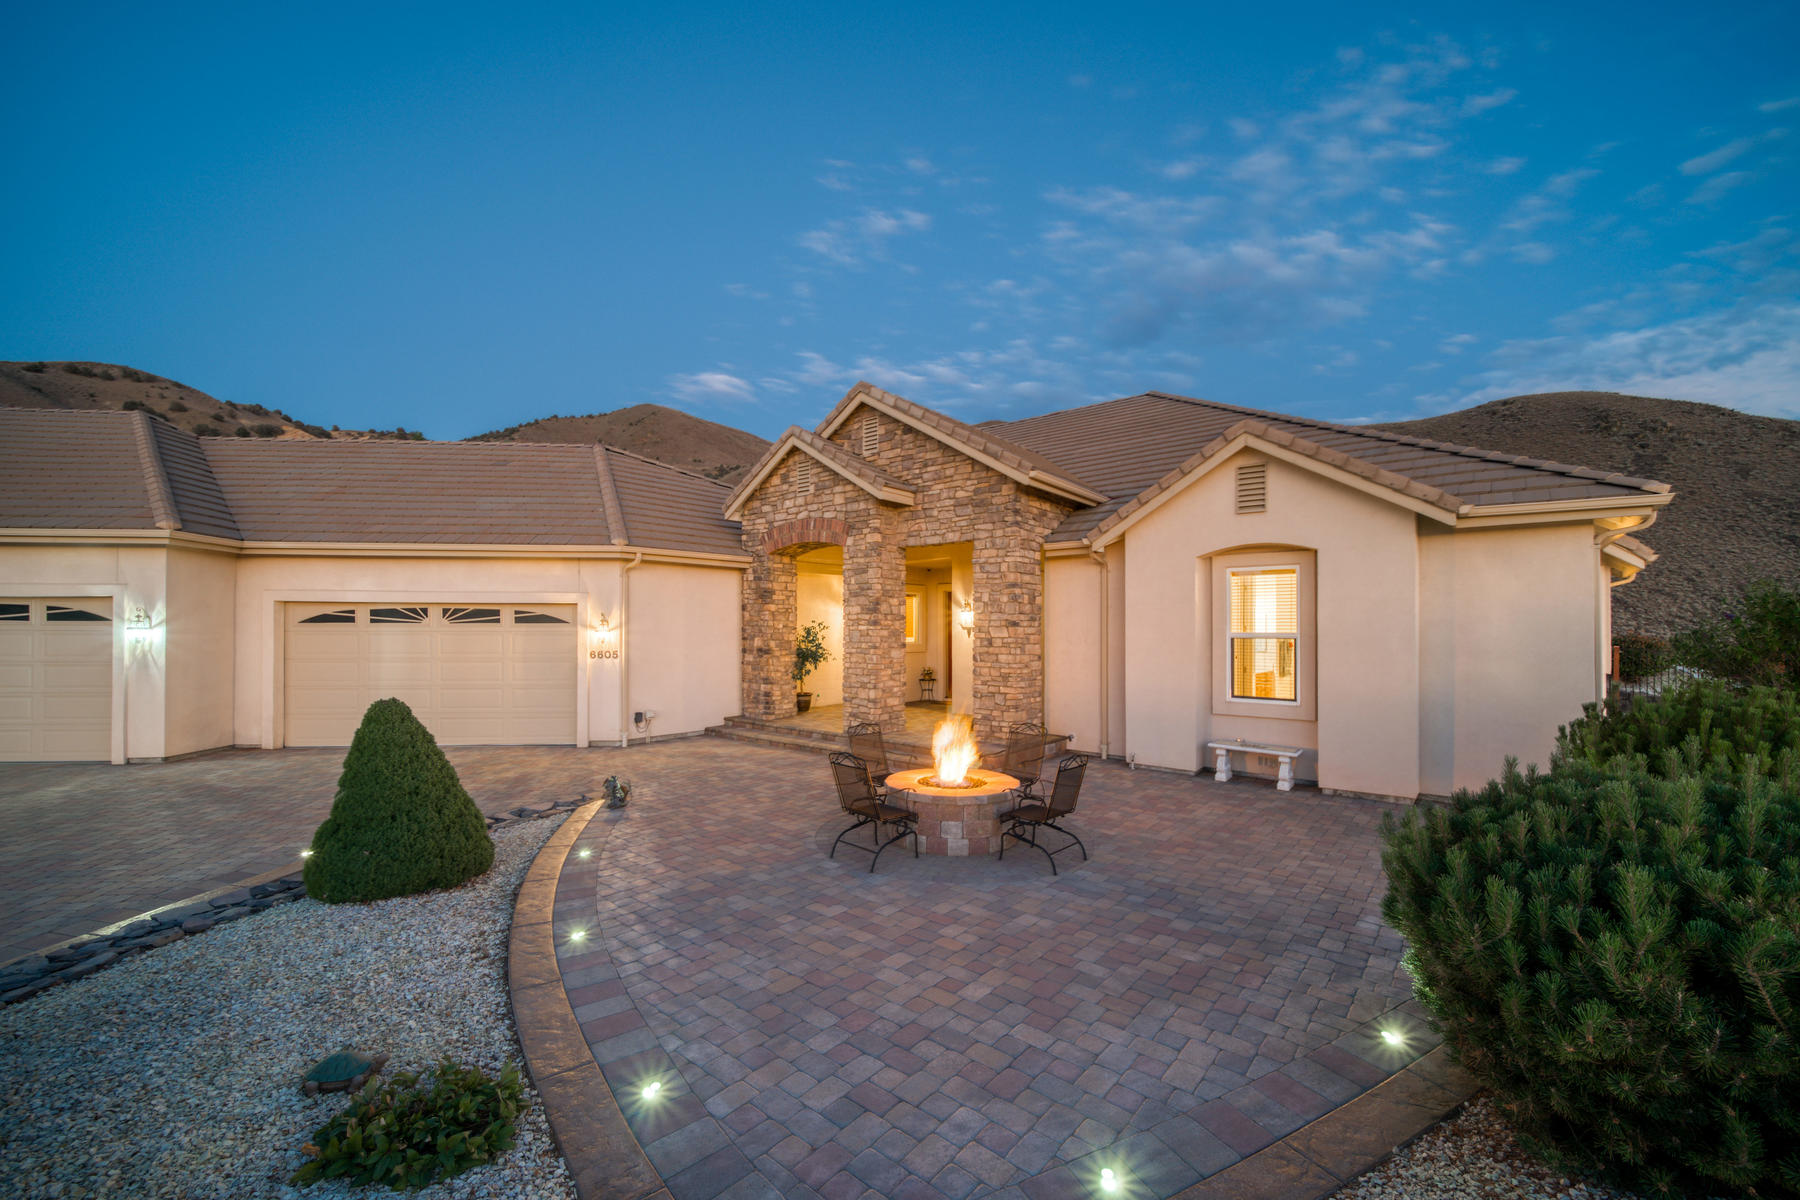 Single Family Homes for Active at Flawless Home in Hidden Valley 6605 Loma Vista Lane Reno, Nevada 89502 United States